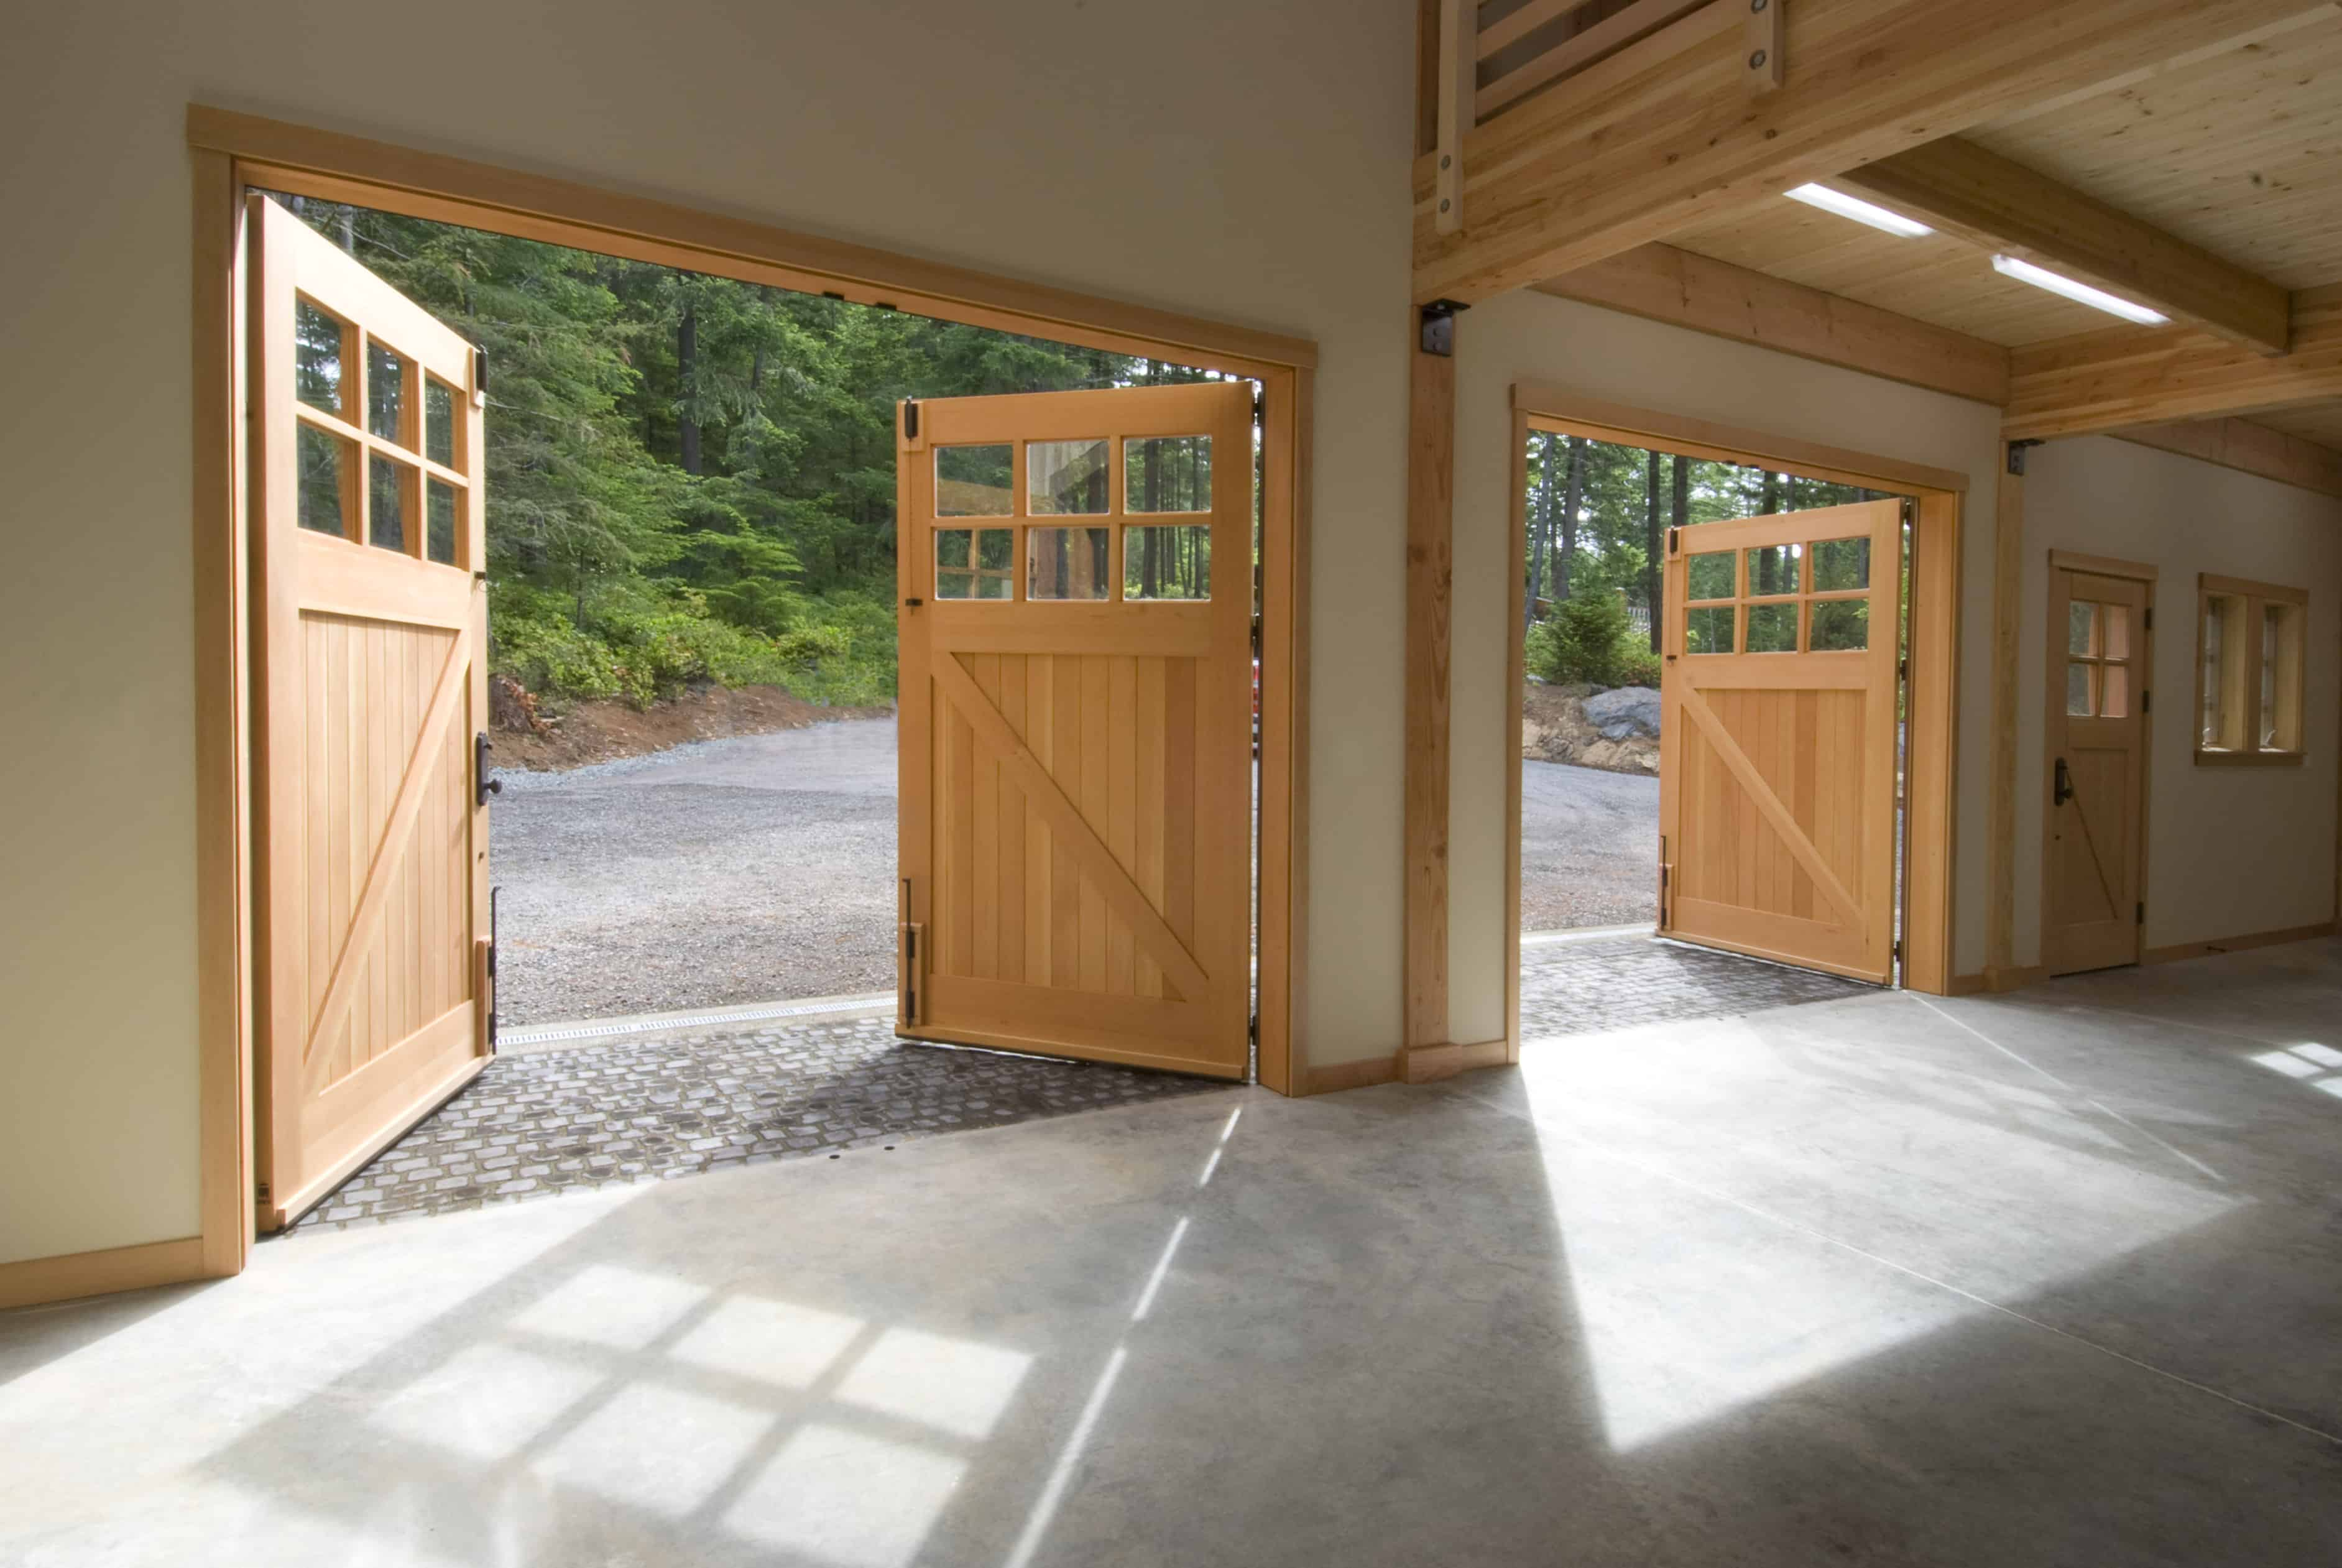 51. CARRIAGE: CL05 Design – Square top, (2x3) lites w/ curved mullions, Z brace w/ tongue + groove panels, Western Red Cedar, w/ bean tip strap hinges & ENTRY: ECL04 Design – Square top, (2x2) lites w/ curved mullions, Z brace w/ tongue + groove panels, Western Red Cedar, w/ butt hinges; Orcas Island, WA